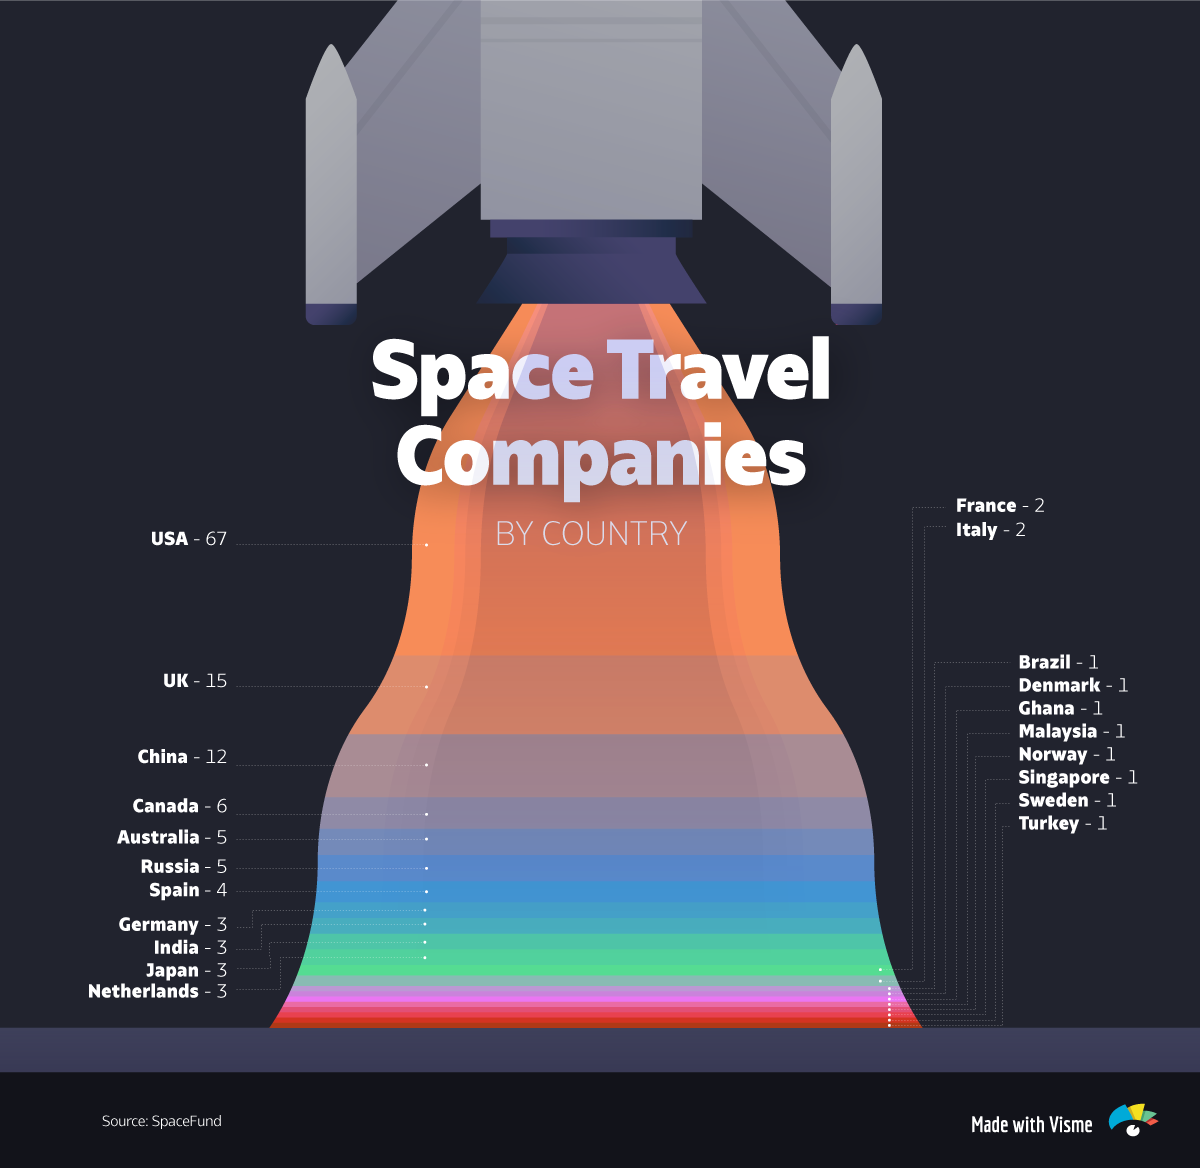 Space-Travel-Companies-by-Country infographic